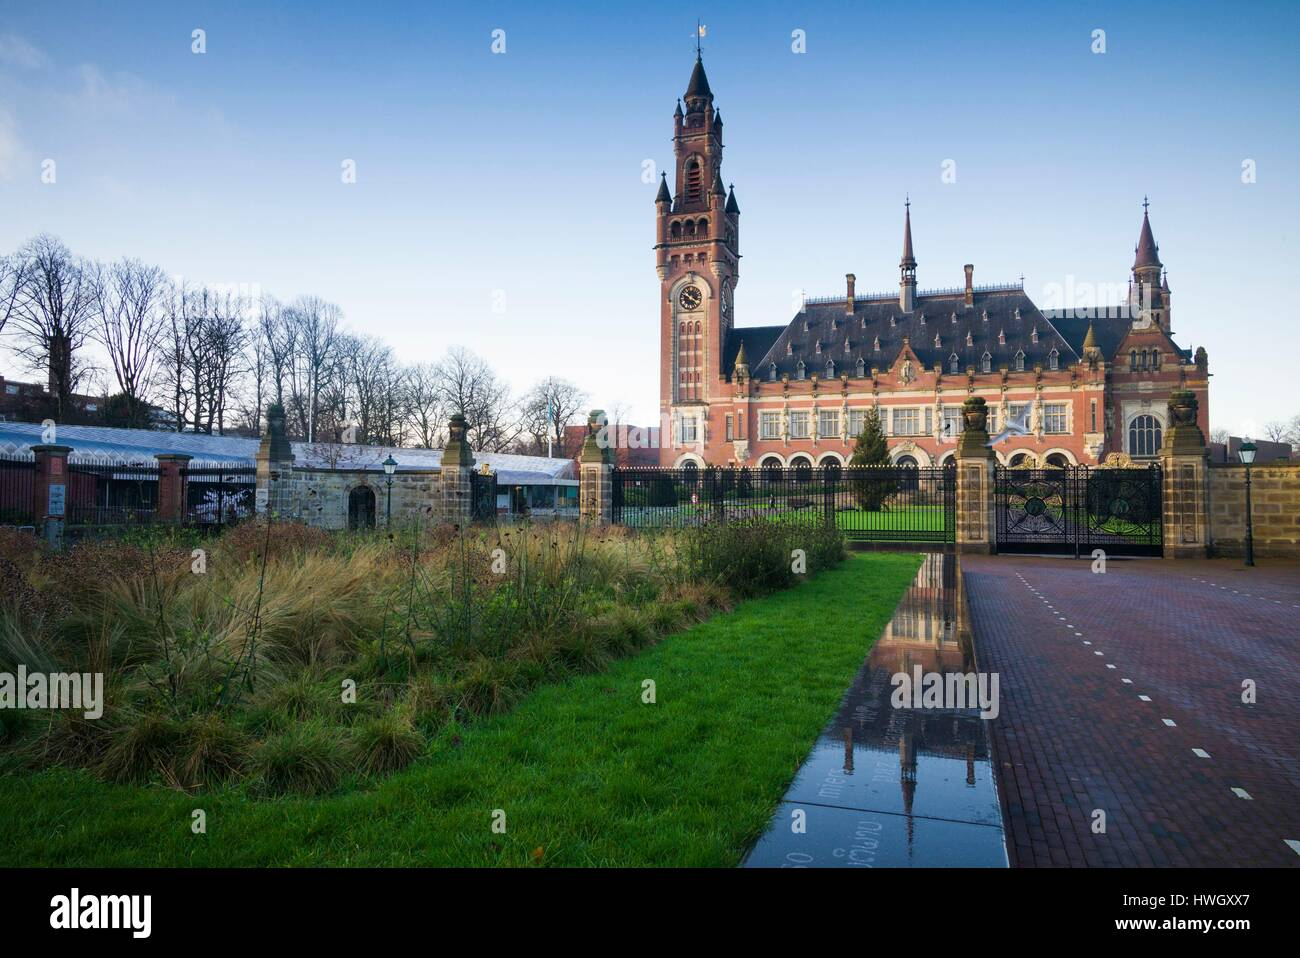 Netherlands, The Hague, Vredespaleis, Peace Palace, seat of the UN International Court of Justice, building donated - Stock Image